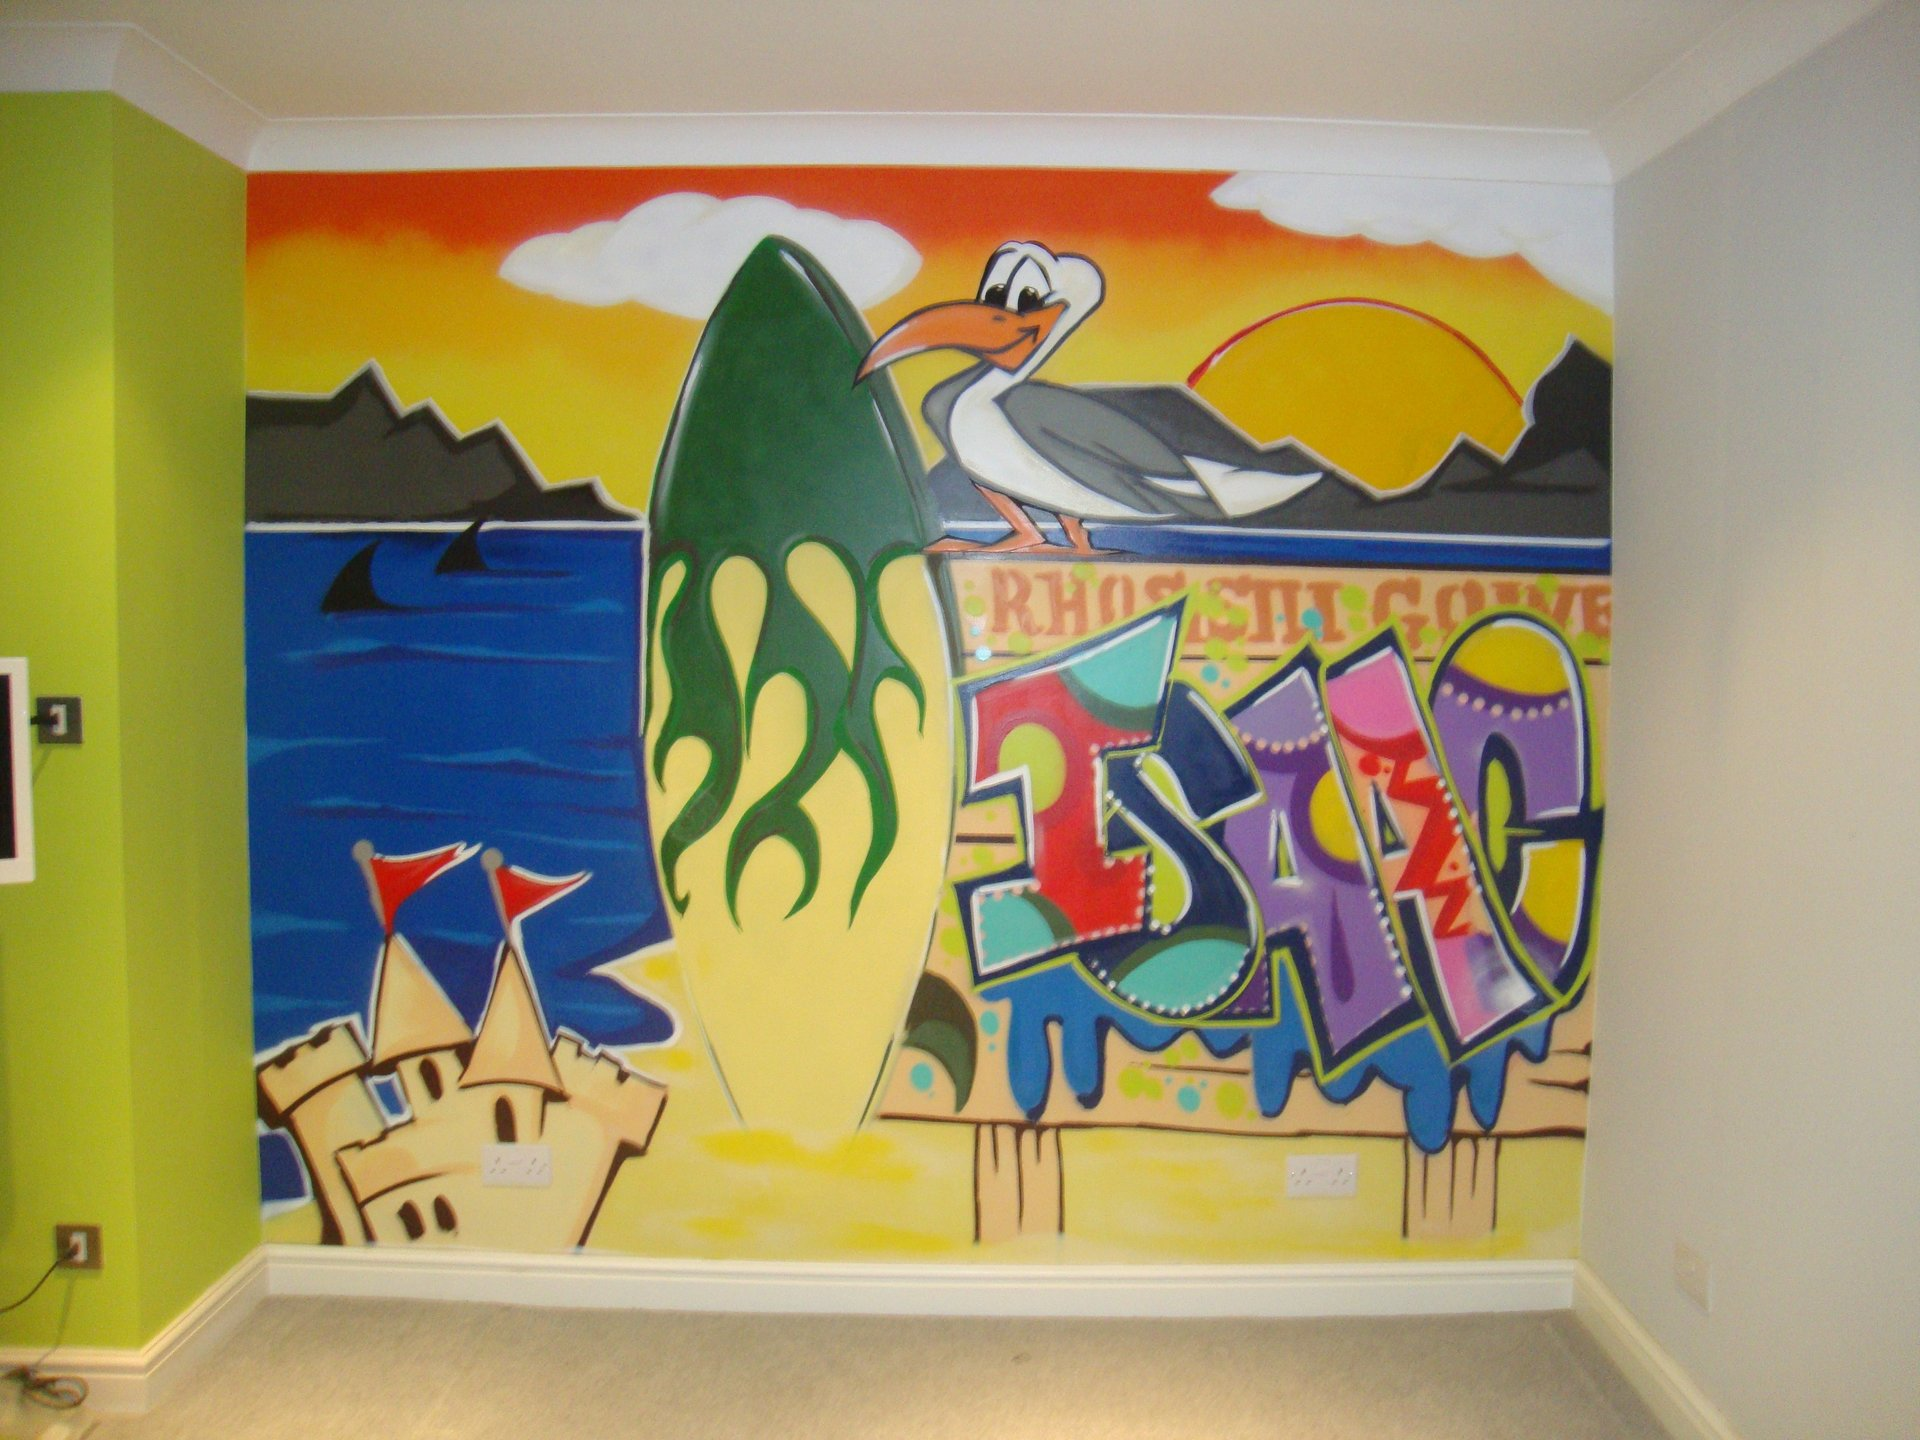 Graffiti wall art bedroom - Full Bedroom Wall Painted With Graffiti Almondsbury